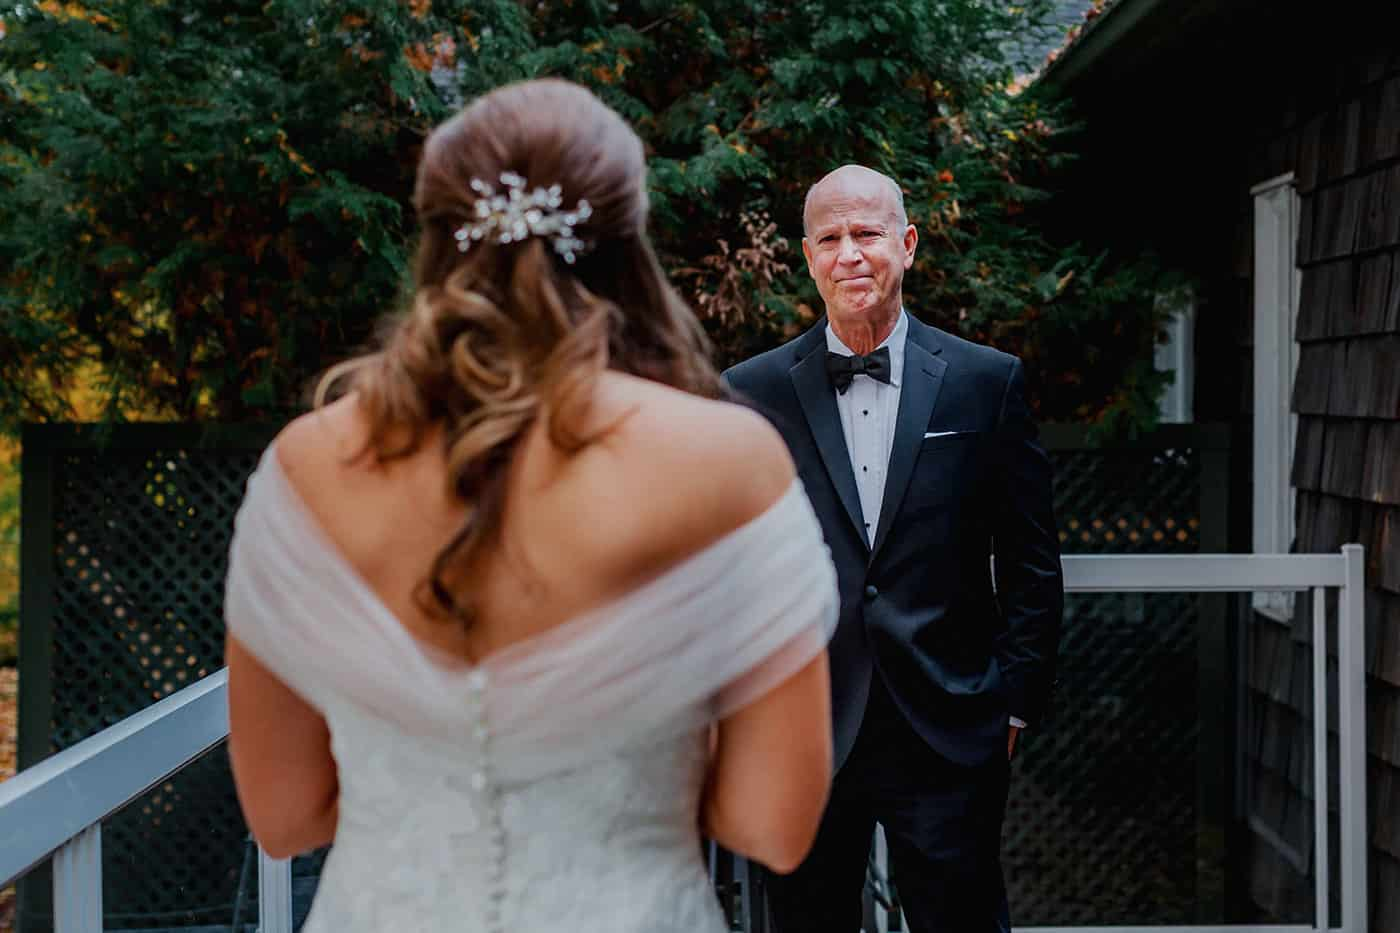 A father sees his daughter in her wedding dress